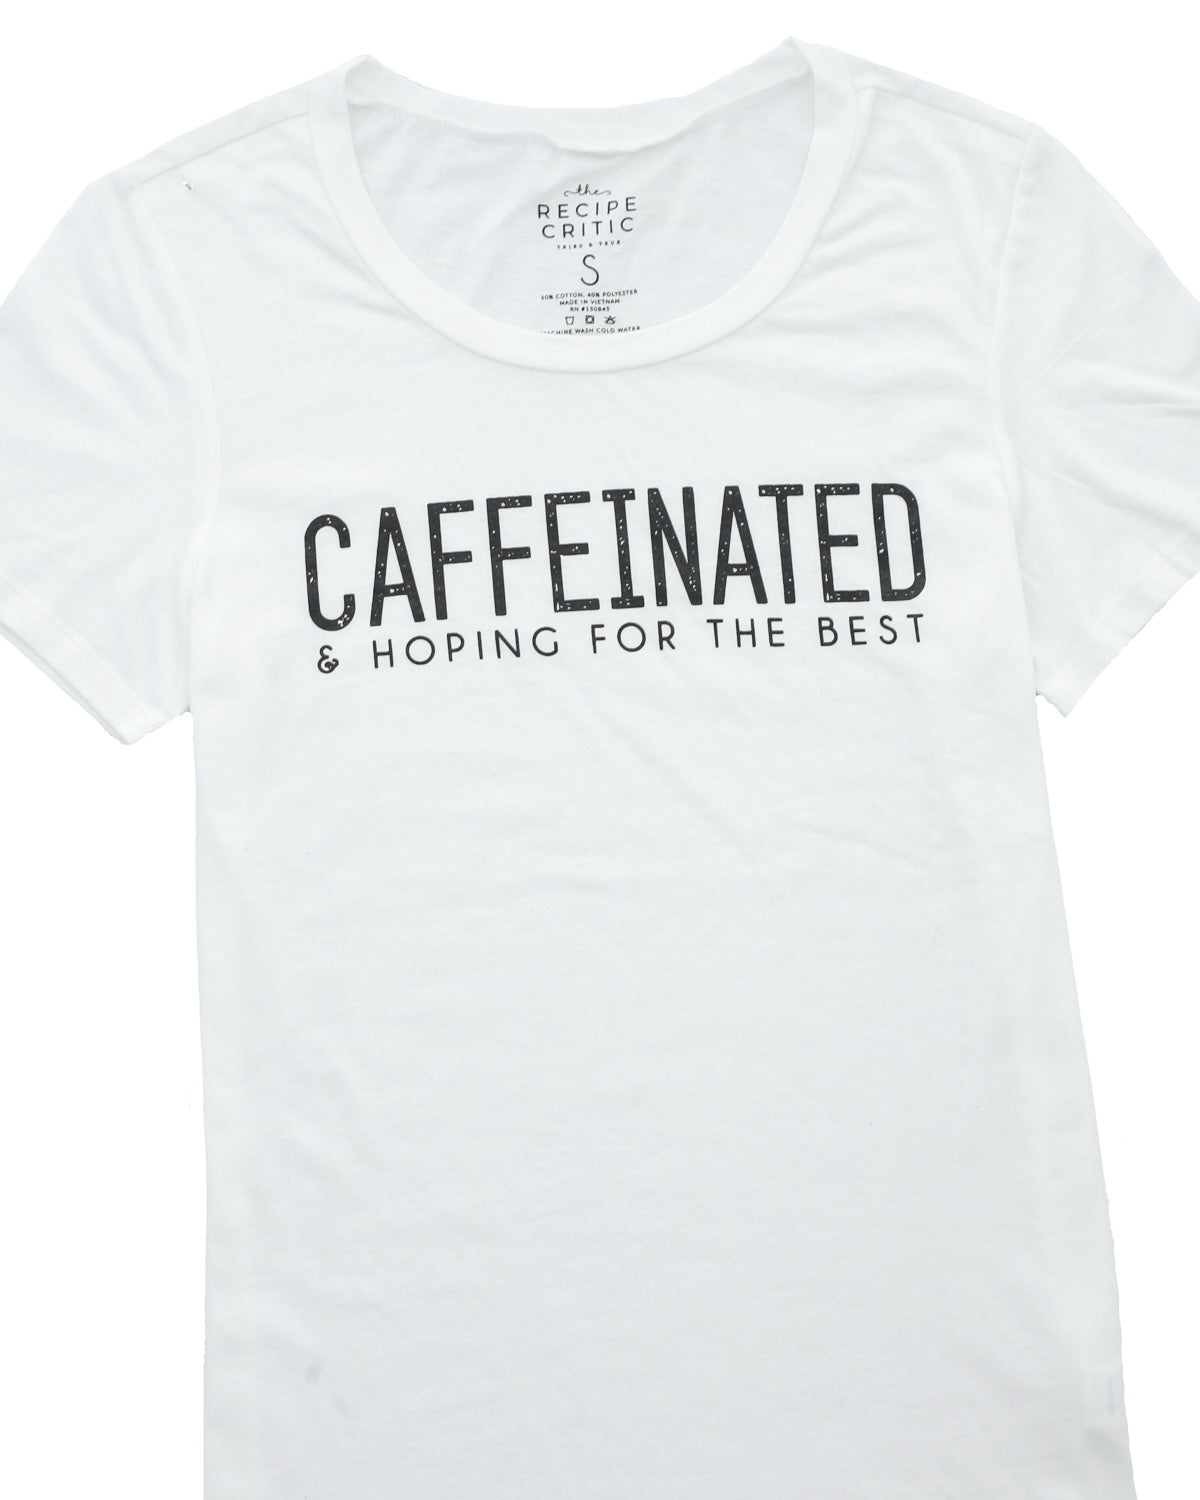 Caffeinated & Hoping for the Best Tee